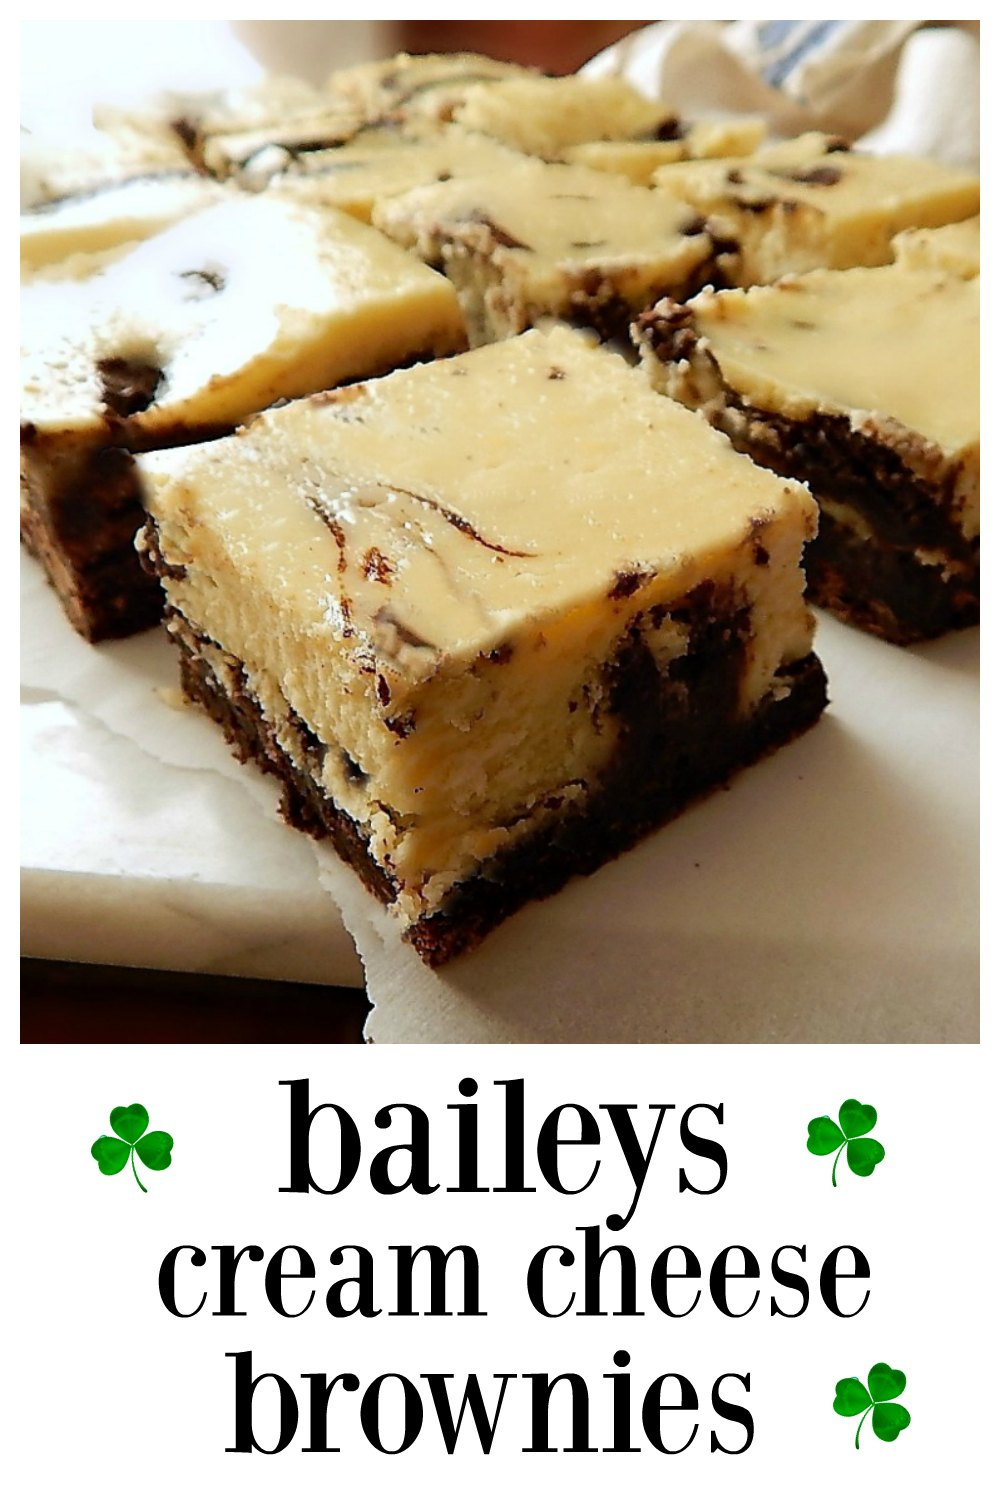 Really Bailey's Cream Cheese Brownies; they taste like they do have Baileys! Perfect for St Paddys! #BaileysBrownies #CreamCheeseBaileysBrownies #Brownies #StPatricksDayRecipes #StPaddysDayRecipes #Brownies #StPatricksDayFood #StPaddysDayFood